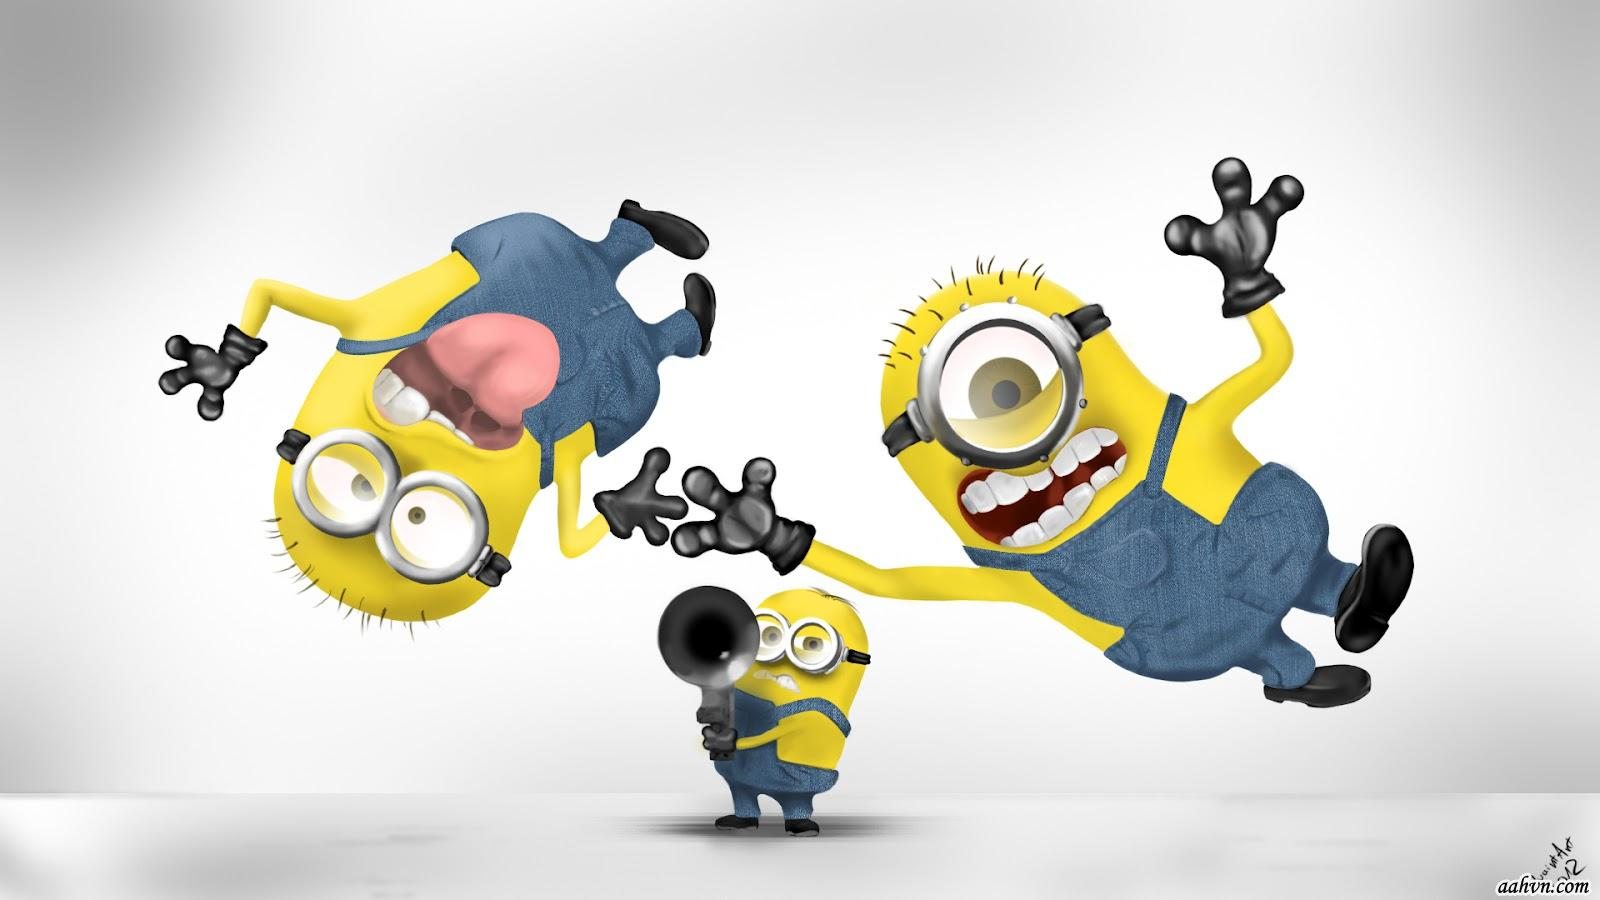 Minion Wallpaper 03 Wallpaper, free minion wallpaper images, pictures download